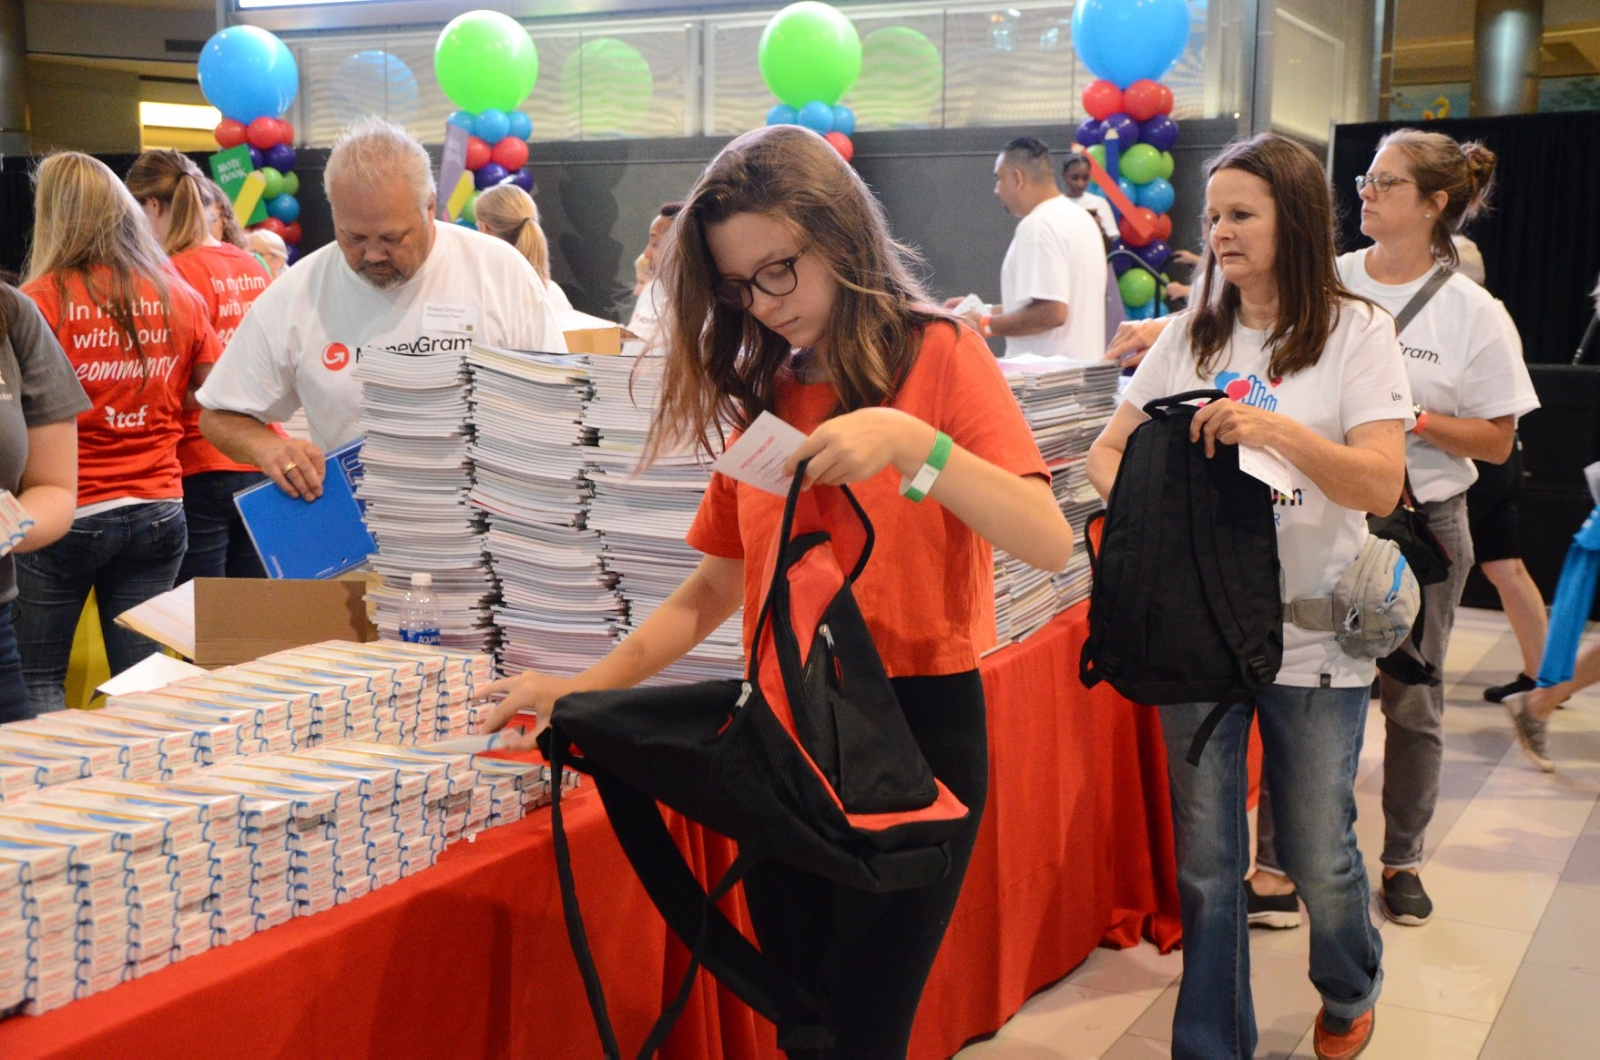 Adults and youth go through the lines to help pack the backpacks. Photos courtesy Mike Madison and Renee Maiz.